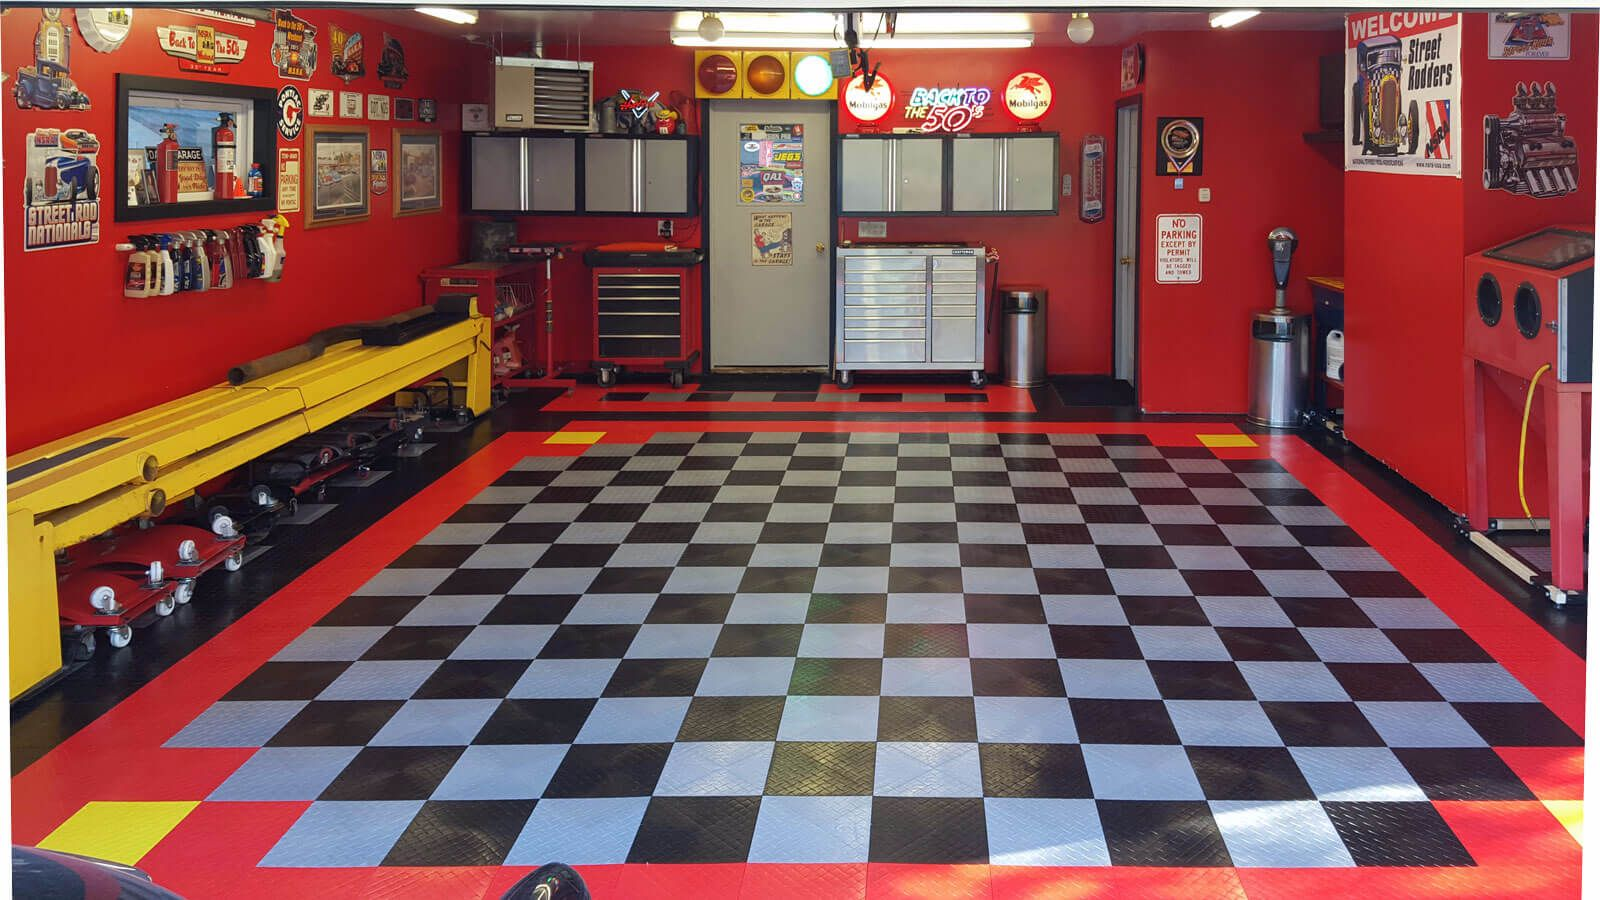 Garage flooring buying guide tiles rolls epoxy more epoxy how to choose garage flooring tiles rolls epoxy more your definitive dailygadgetfo Choice Image